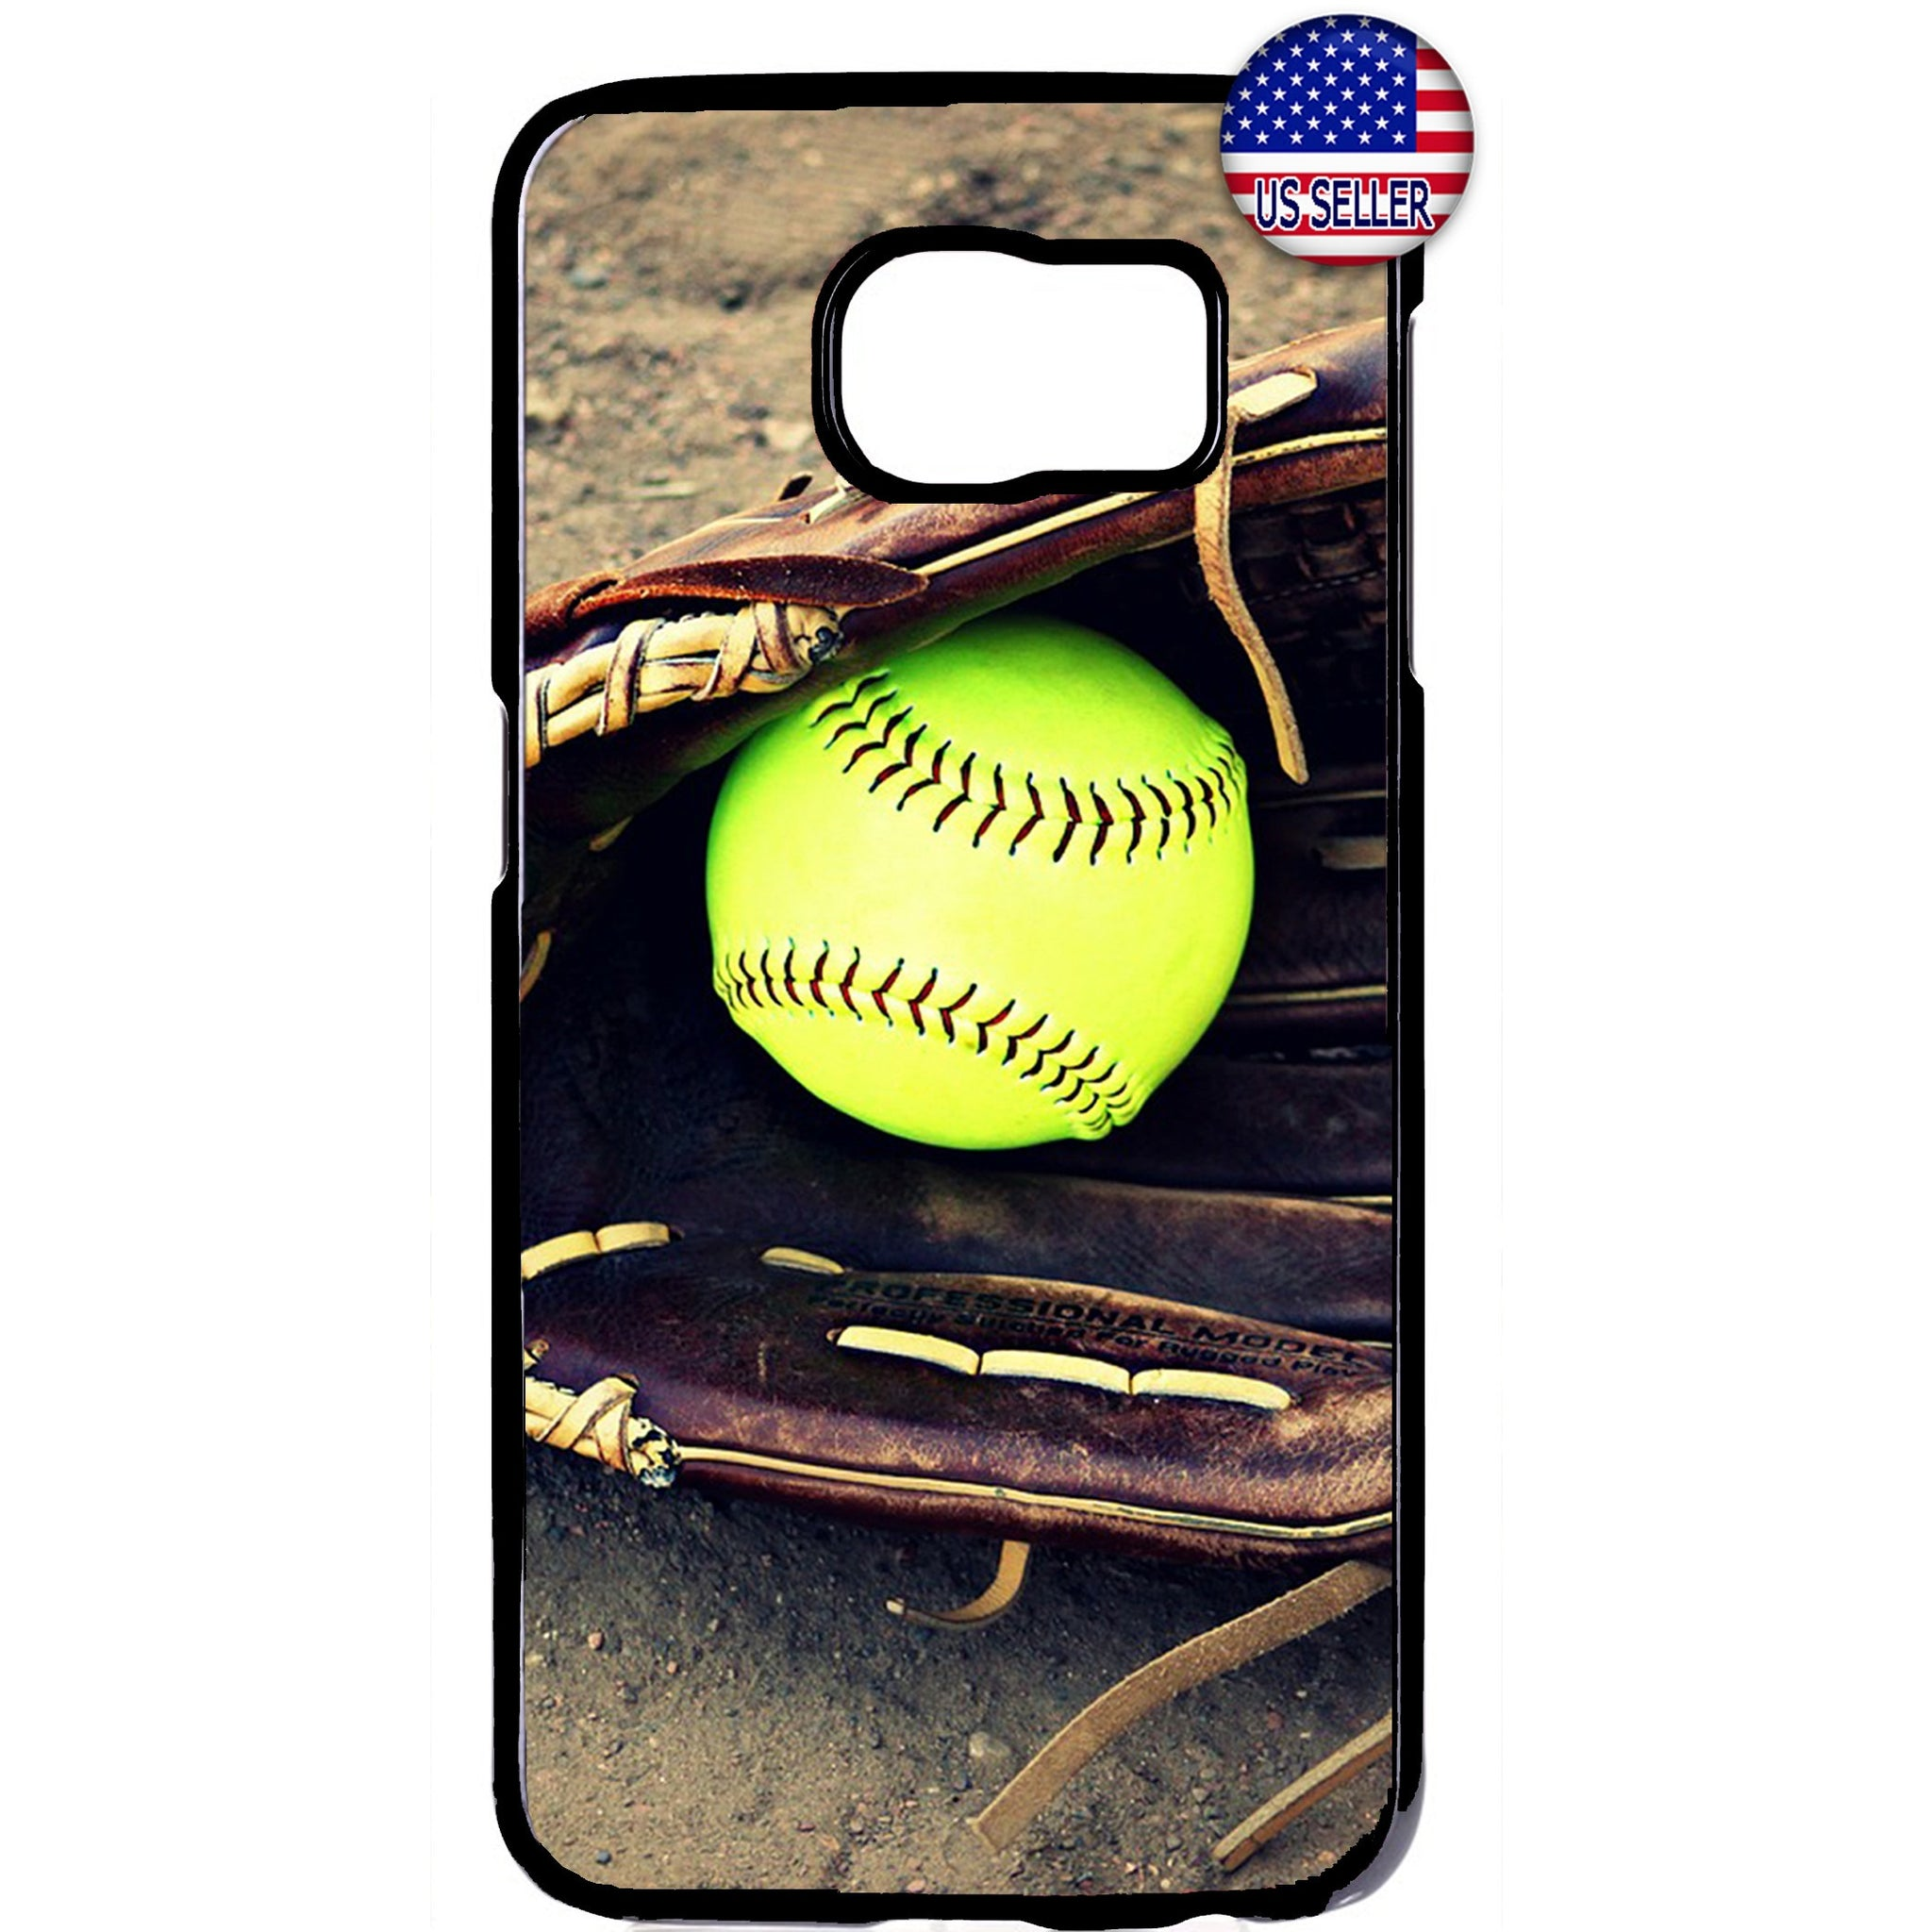 Softball & Glove Theme Sports Rubber Case Cover For Samsung Galaxy